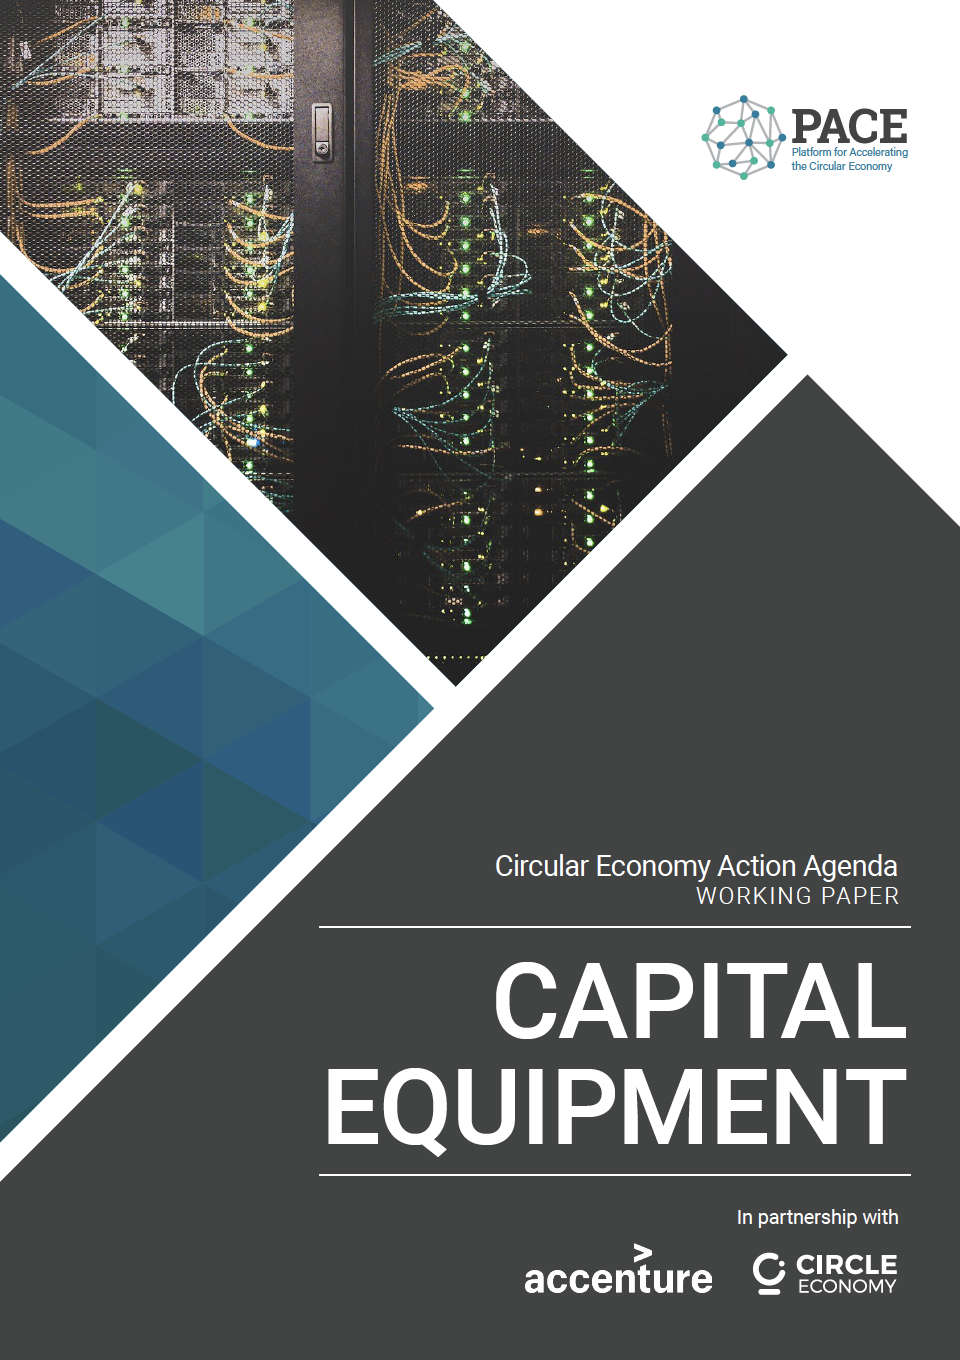 The Circular Economy Action Agenda for Capital Equipment